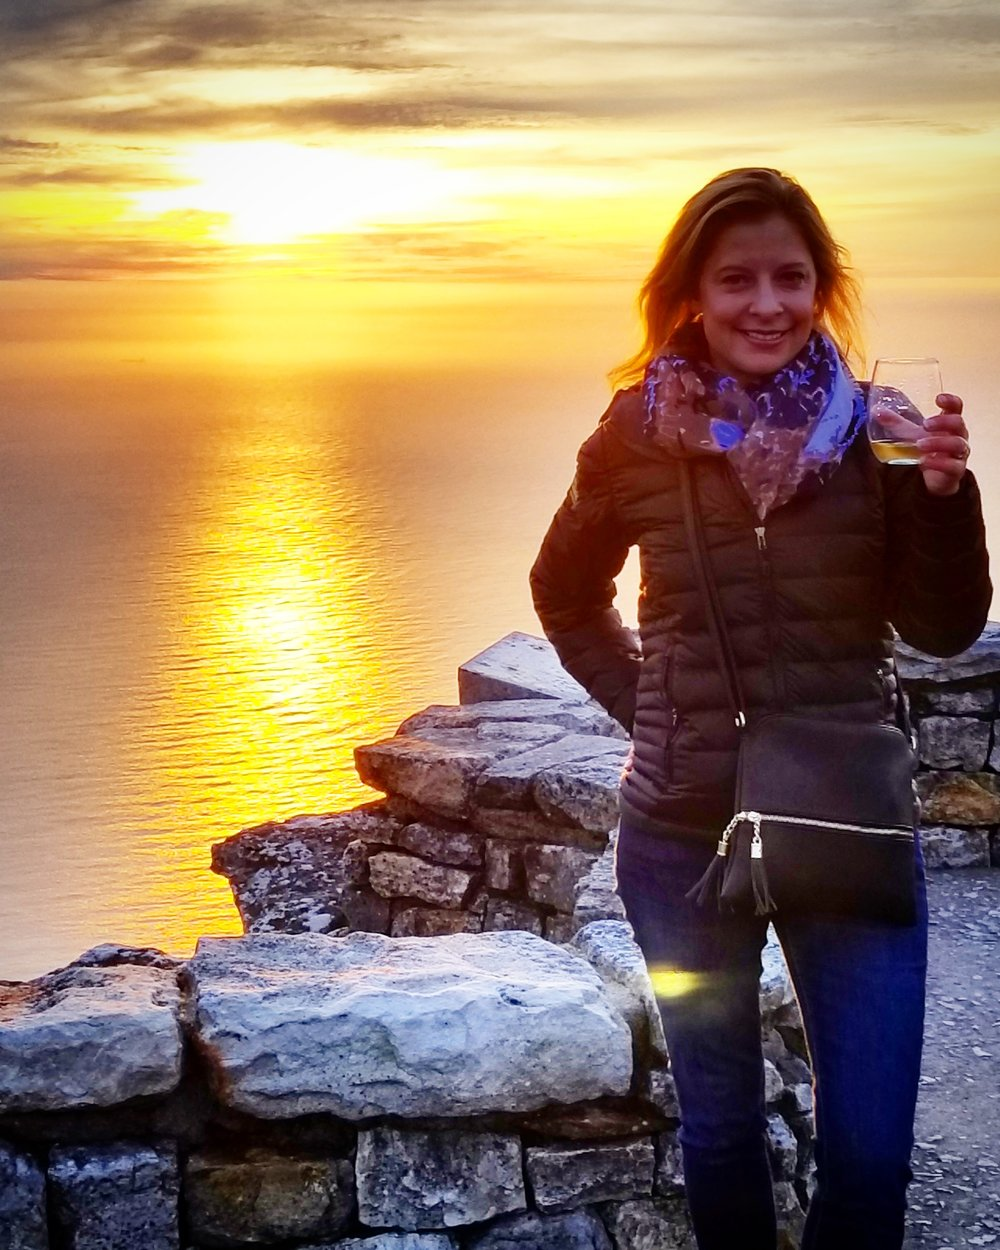 Toasting the sunset with Methode Cap Classique at the top of Table Mountain in Cape Town, South Africa.